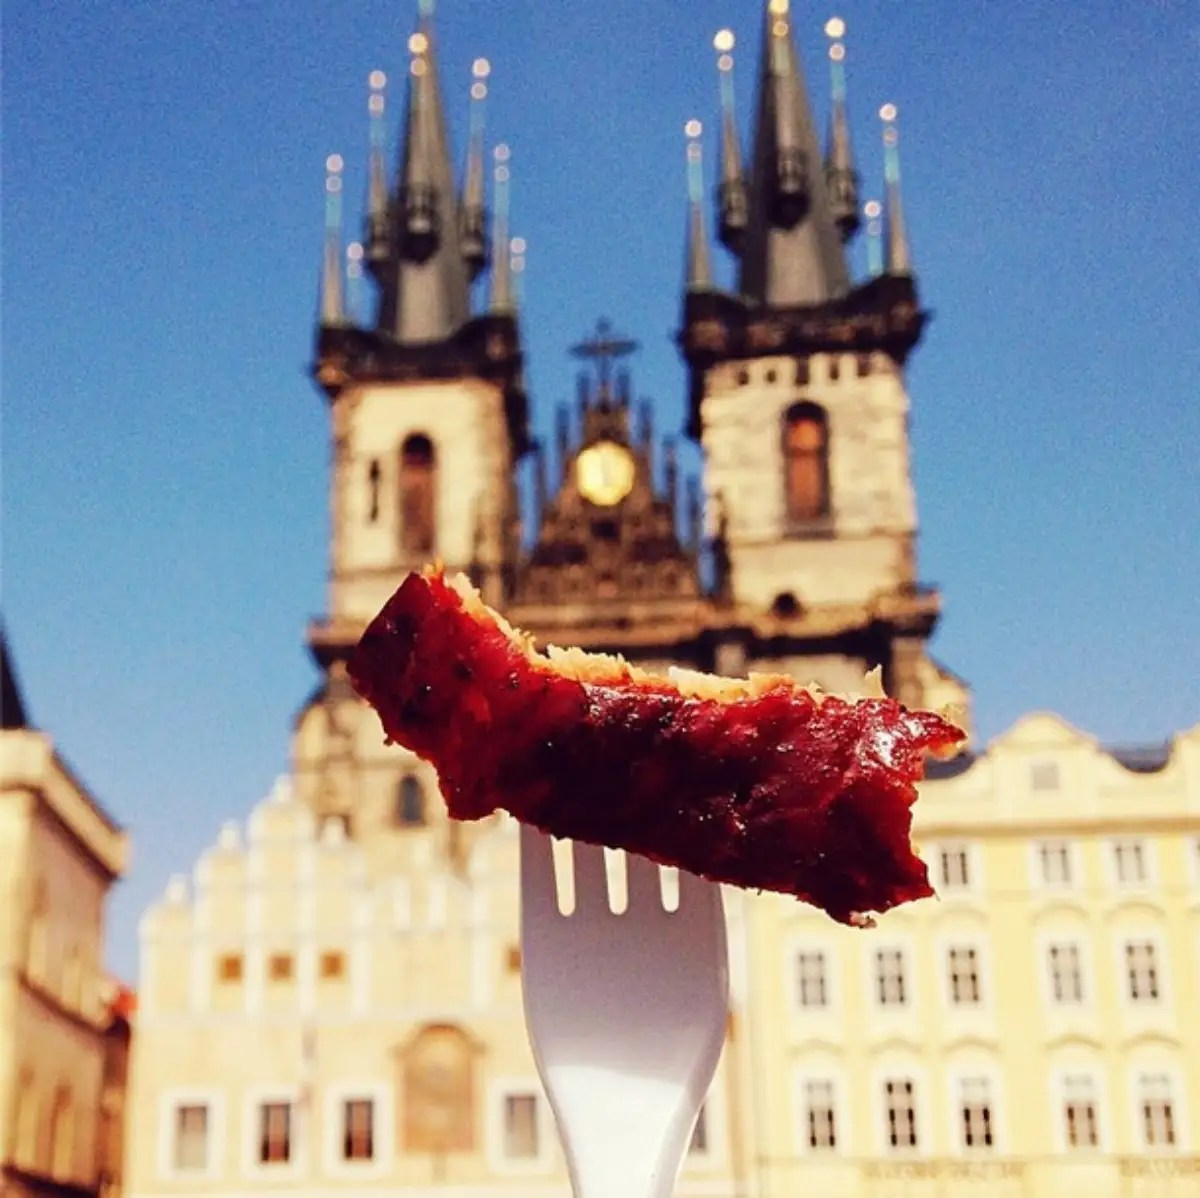 Prosciutto di Prague at Old Town Square in Prague, which was actually a tourist trap. I just couldn't say no to ham.